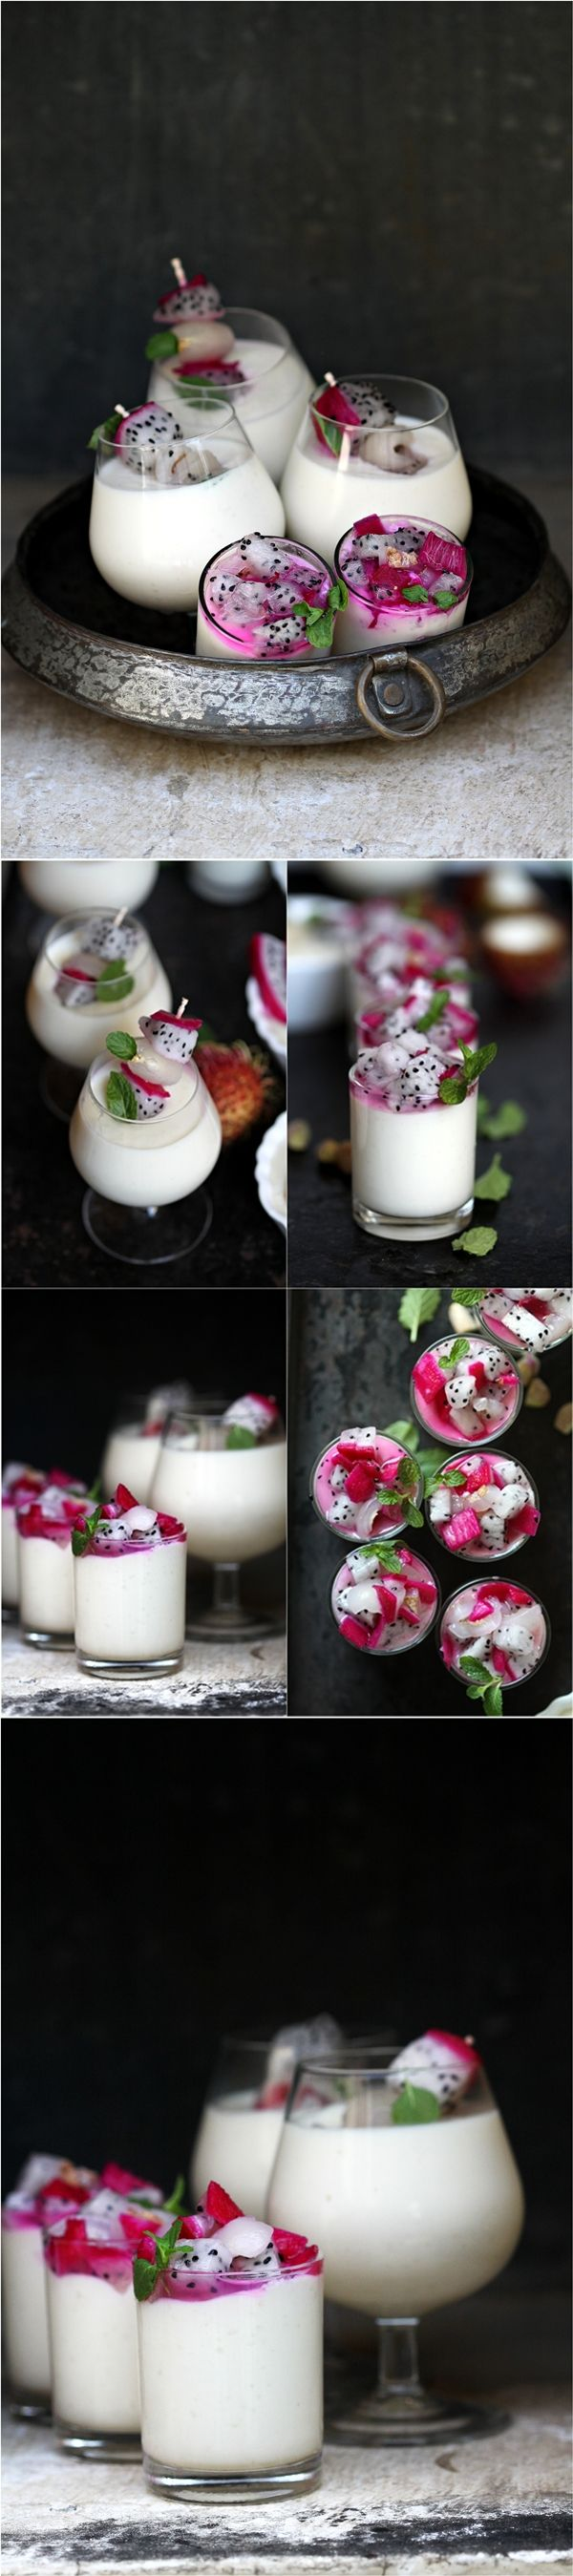 Tropical Coconut Rice Milk Pudding